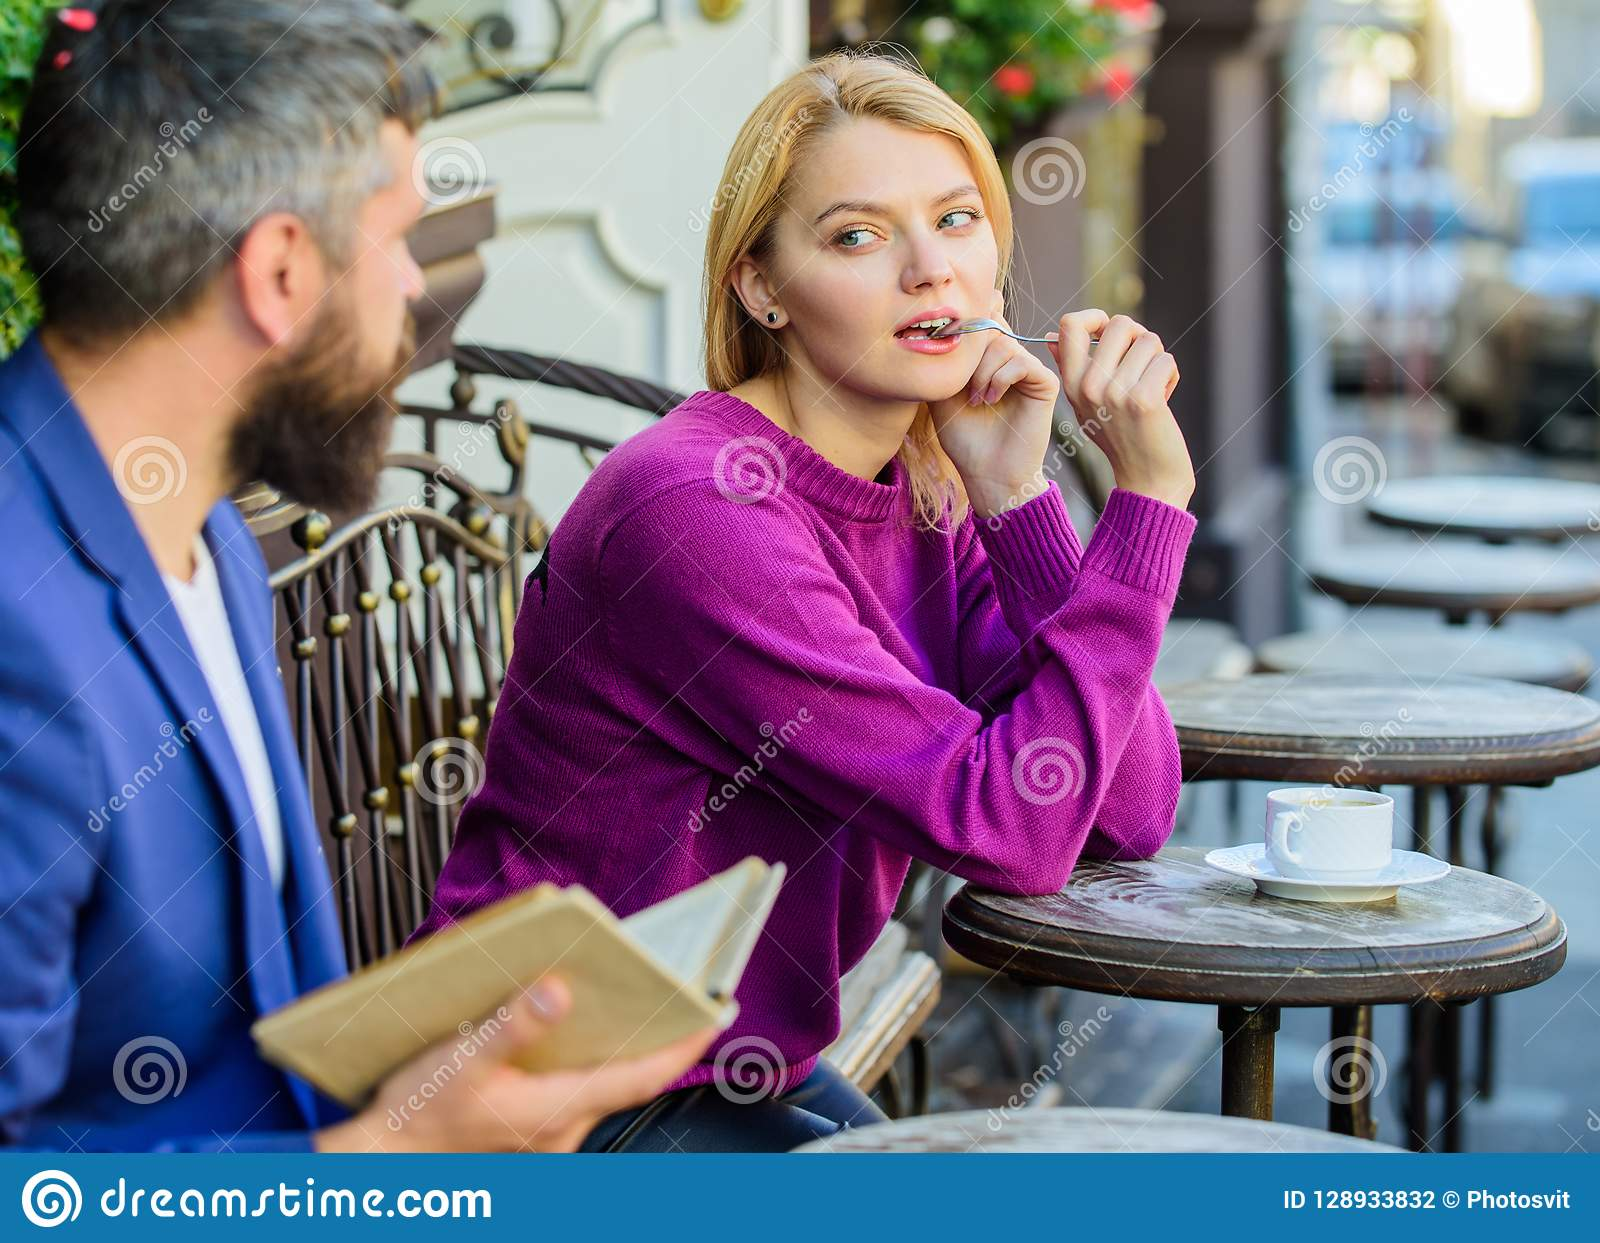 Girl interested what he reading. Guide to dating. Meeting people with similar interests. Man and woman sit cafe terrace